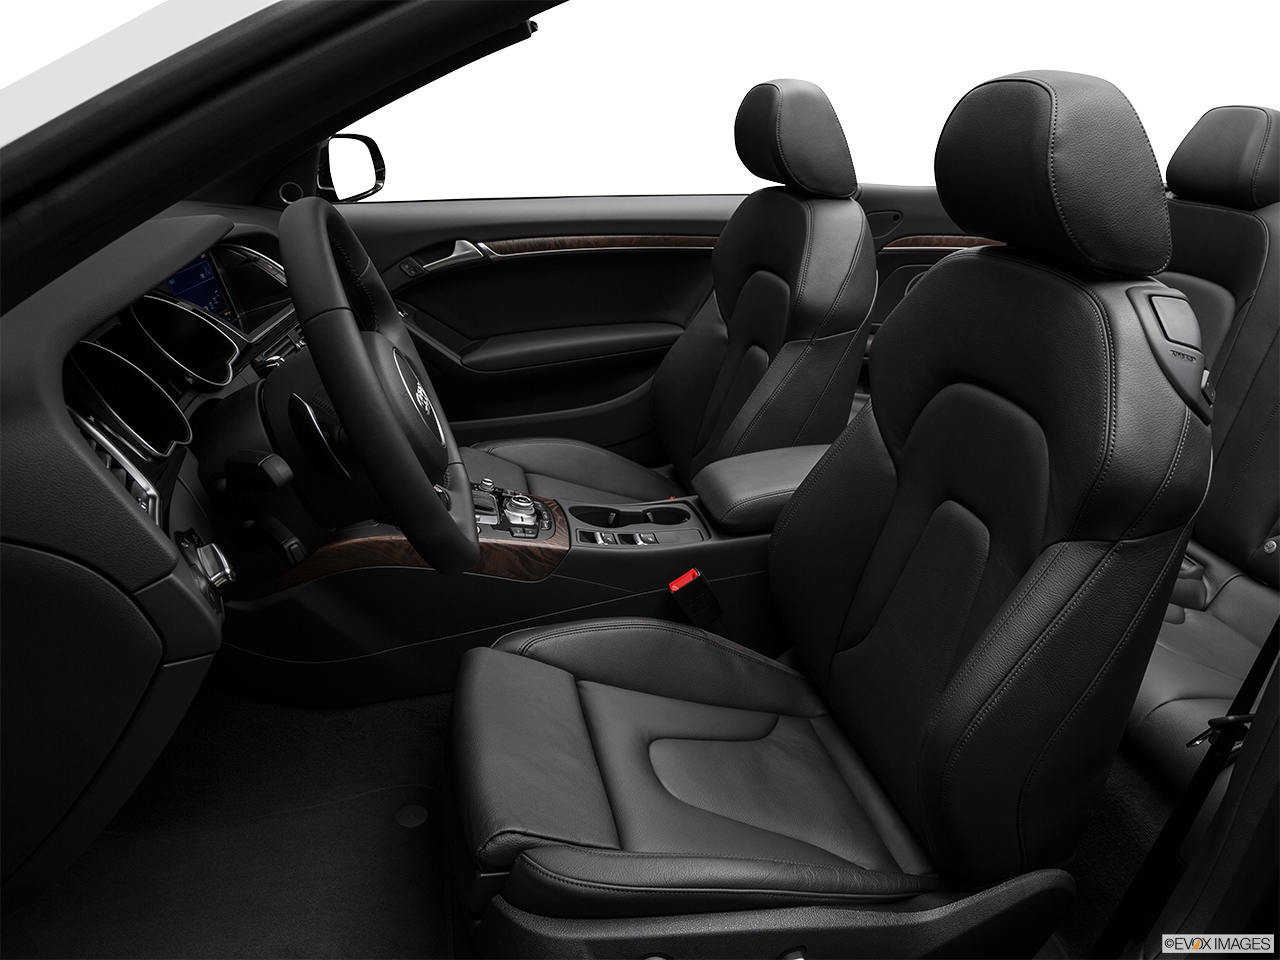 2017 Audi A5 Sport Cabriolet 2.0 TFSI Front seats from Drivers Side.